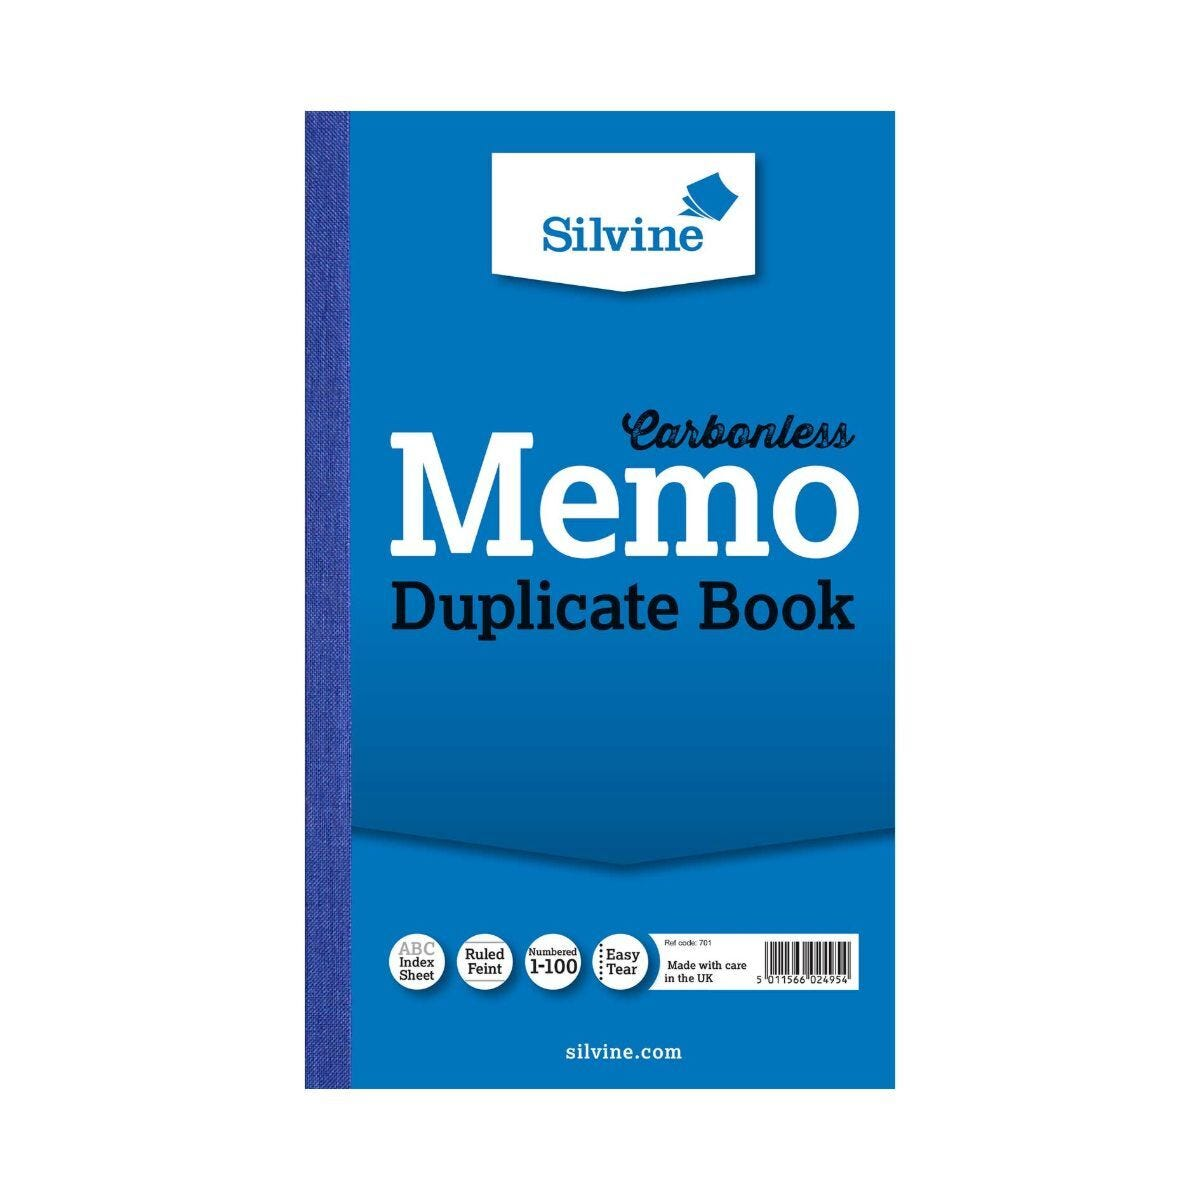 Silvine Duplicate Memo Book 701 Ruled and Perforated Carbonless 100 Pages 50 Sheets